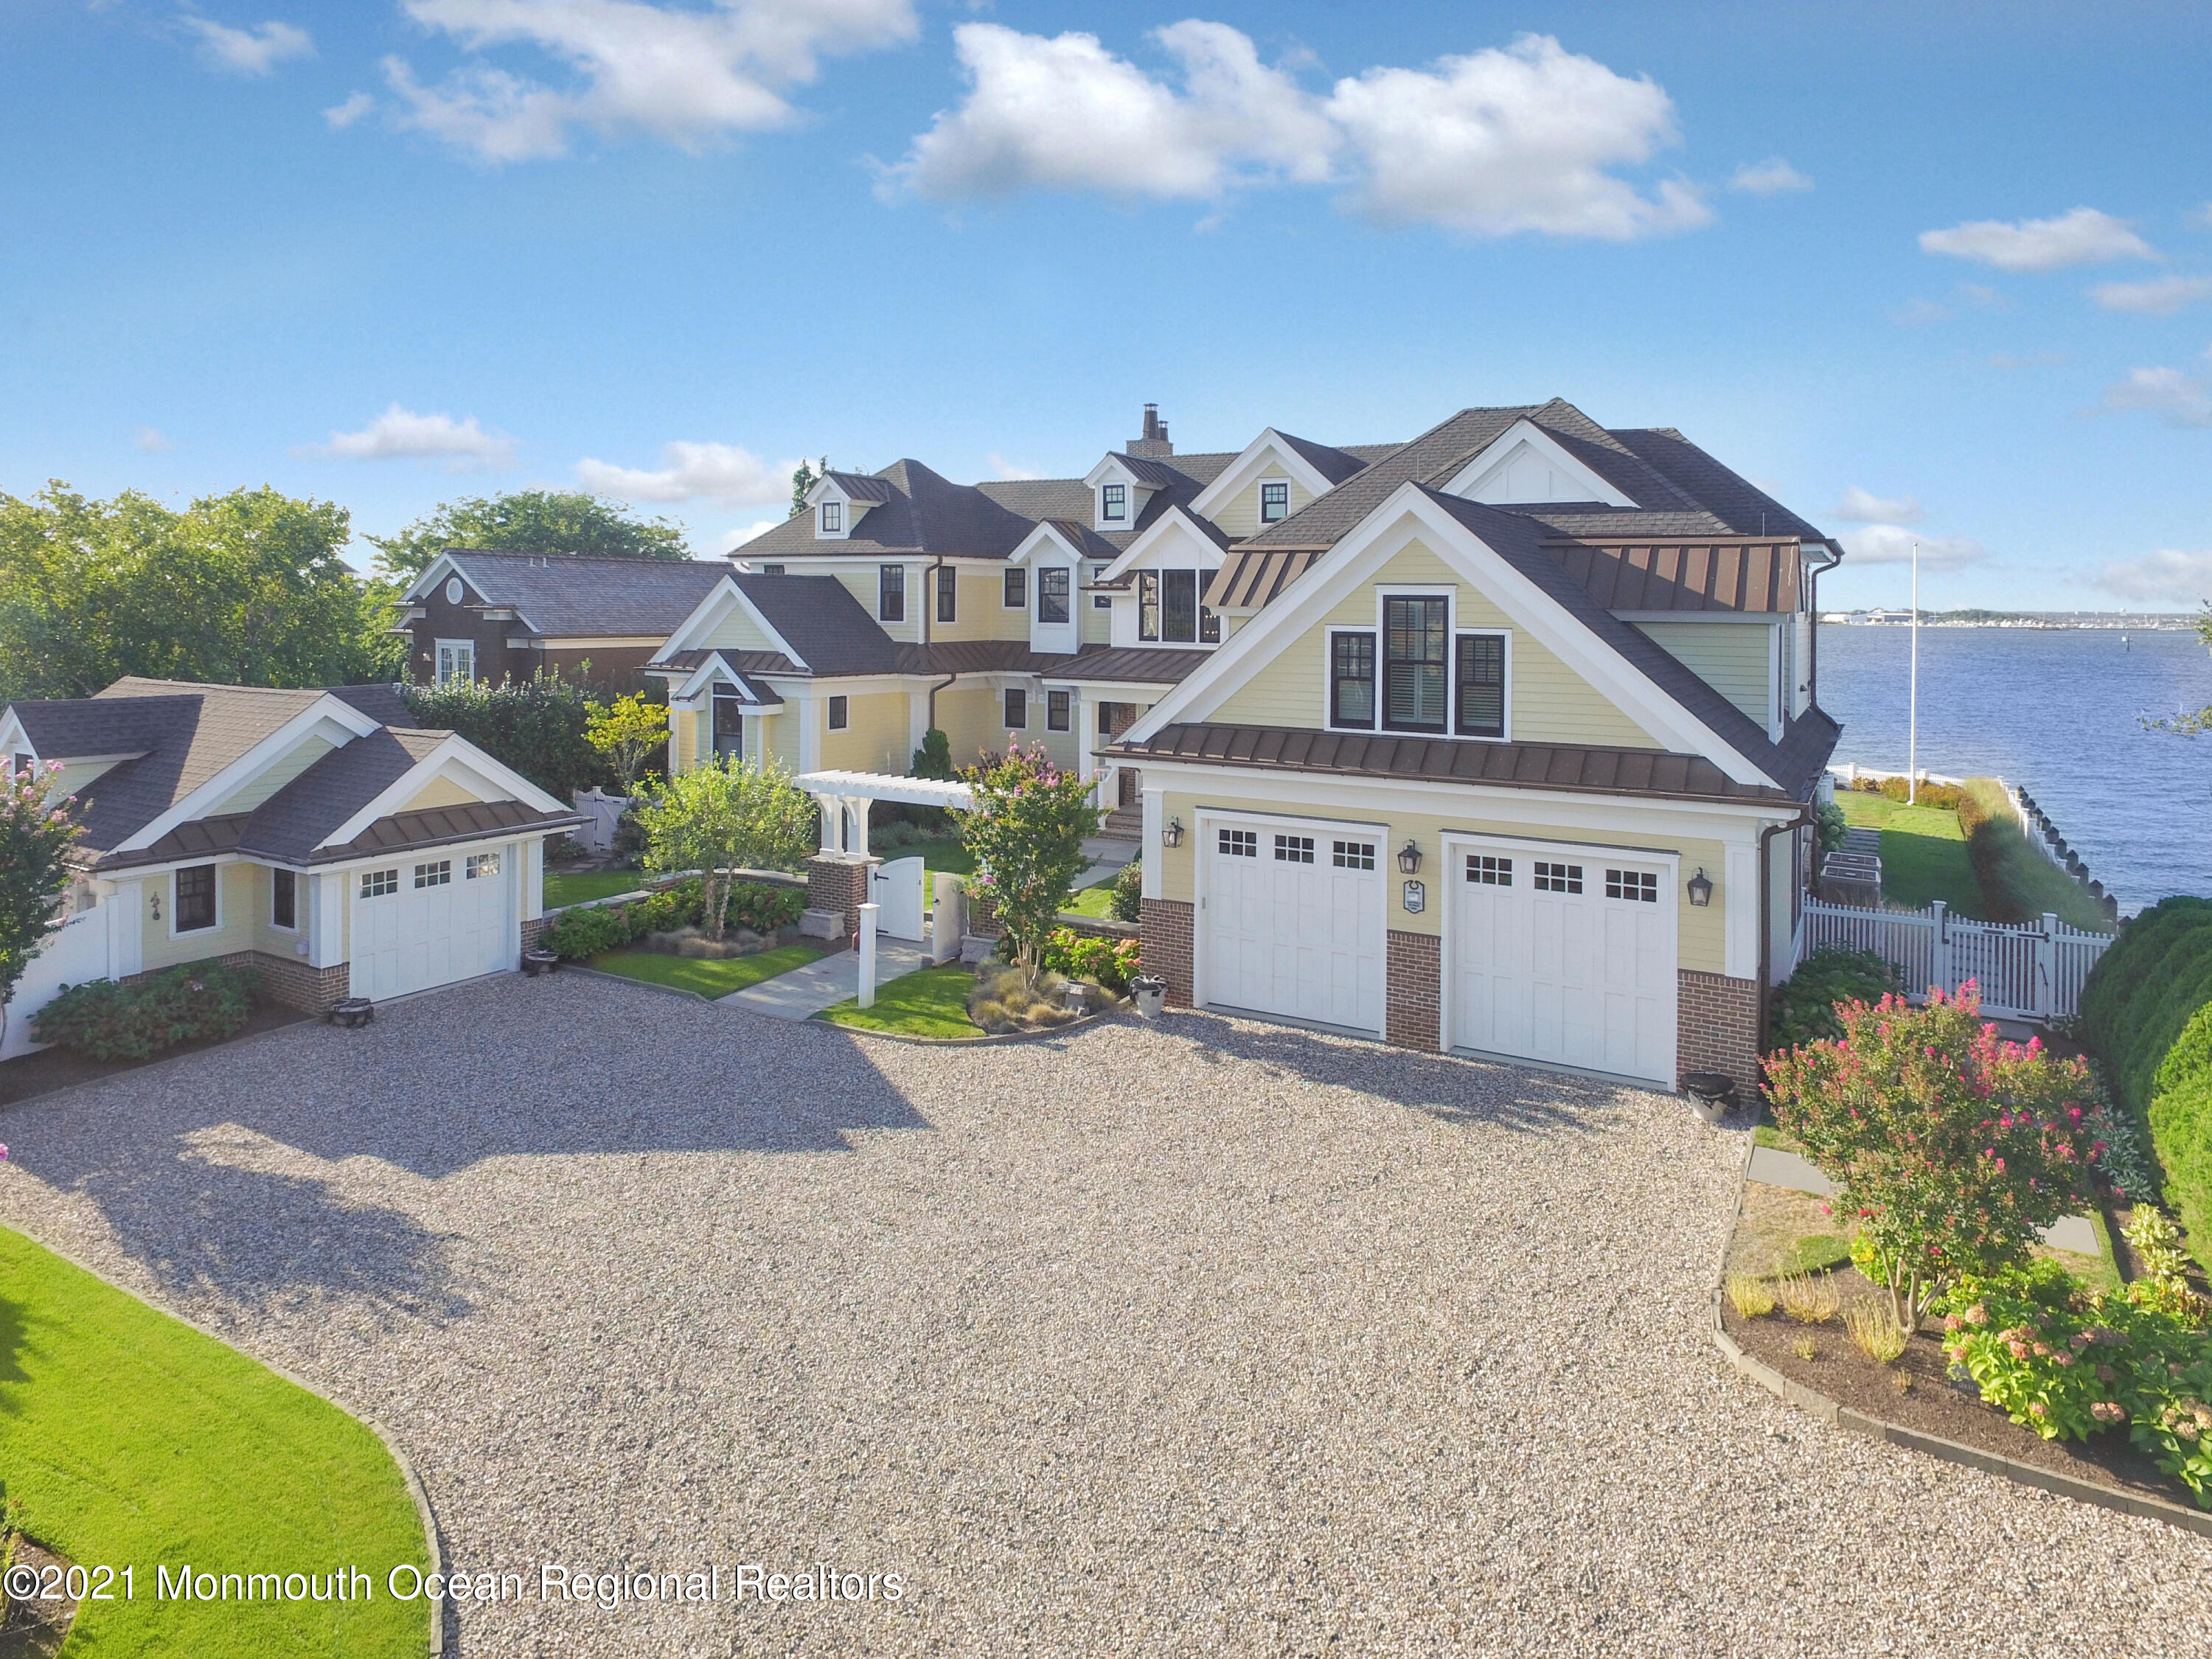 Photo of 115 Curtis Point Drive, Mantoloking, NJ 08738